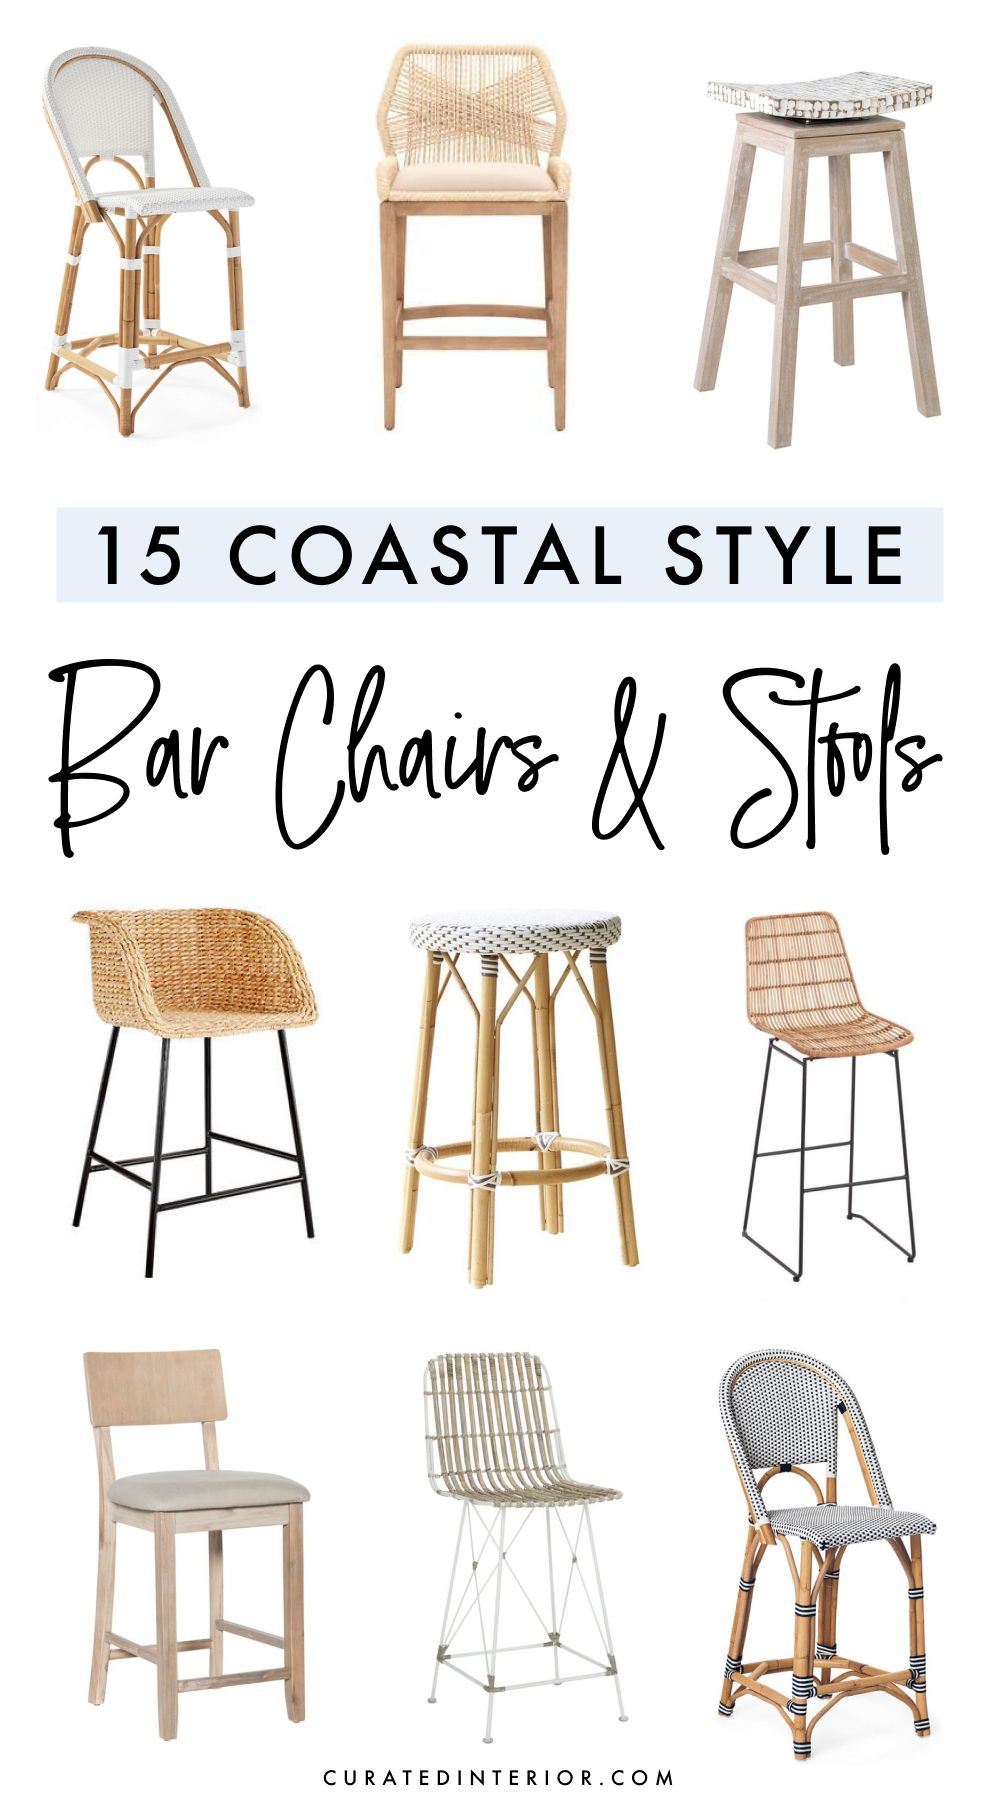 Coastal Style Bar Chairs and Stools